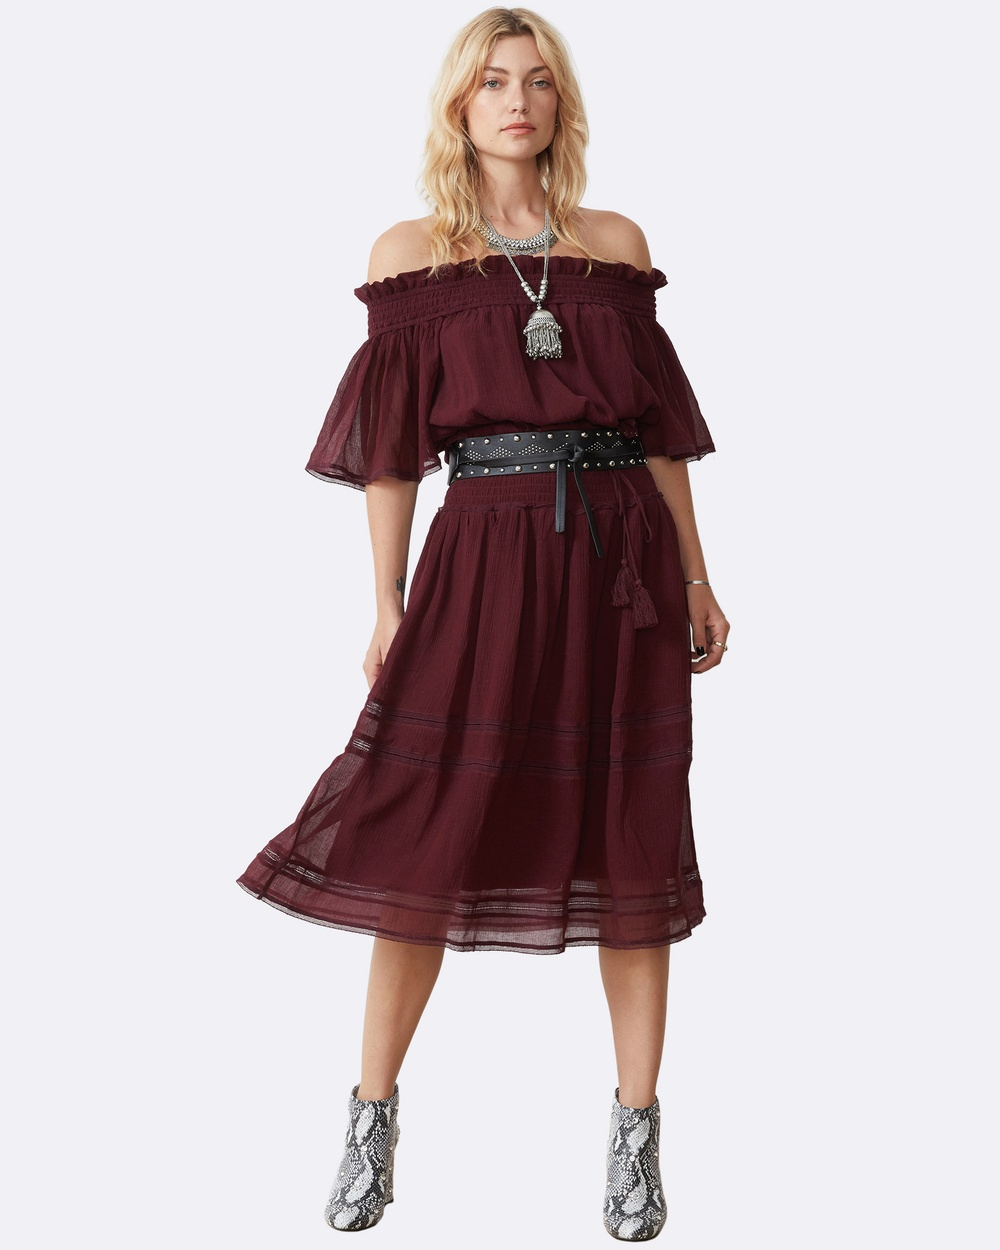 Stevie May Senna Midi Dress Dresses Burgundy Senna Midi Dress